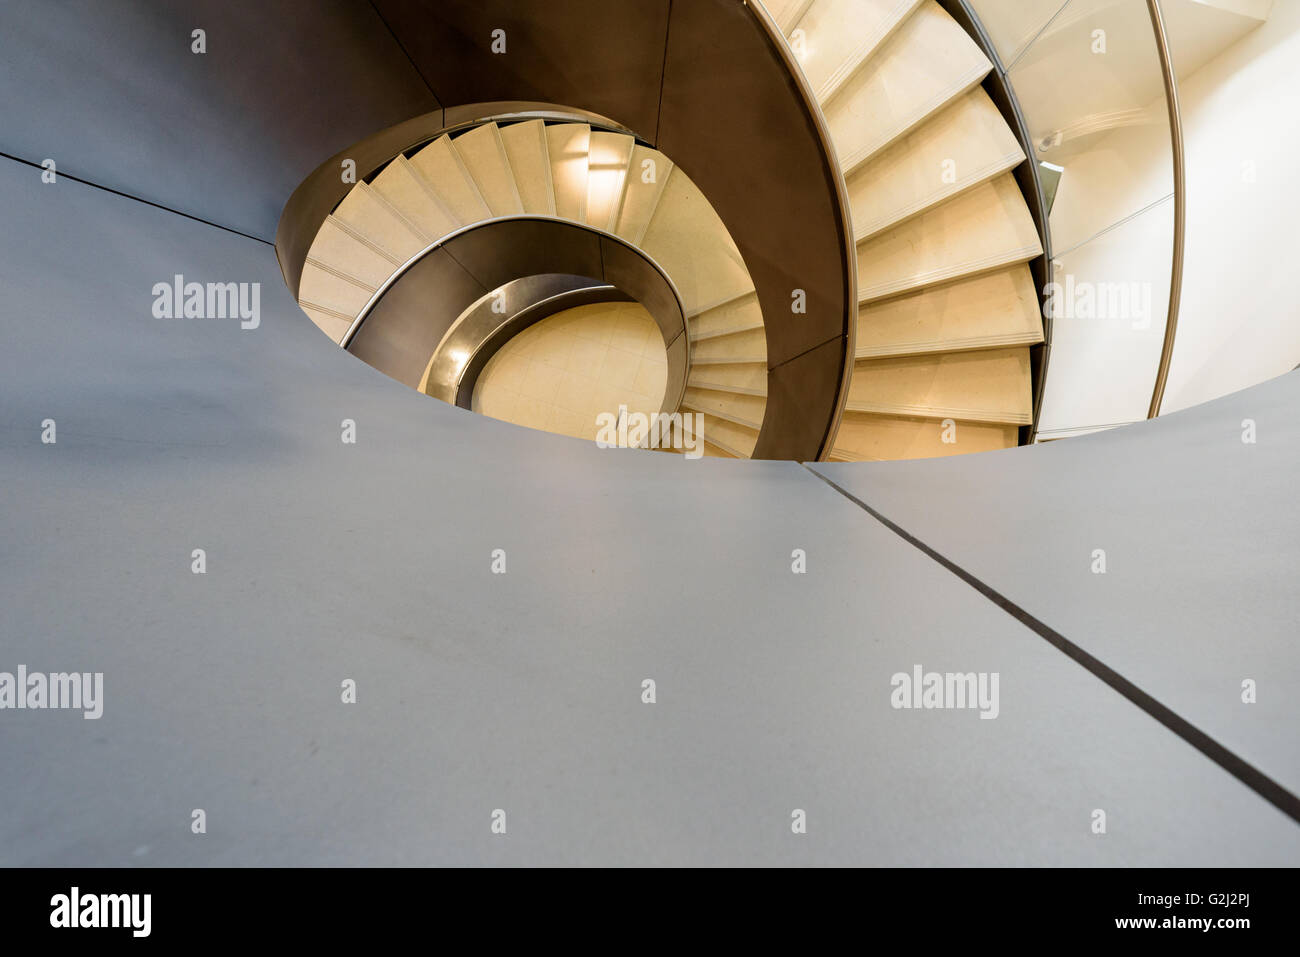 Modern spiral staircase in London at the Wellcome Collection museum at 183 Euston Rd, Kings Cross, London NW1 2BE - Stock Image